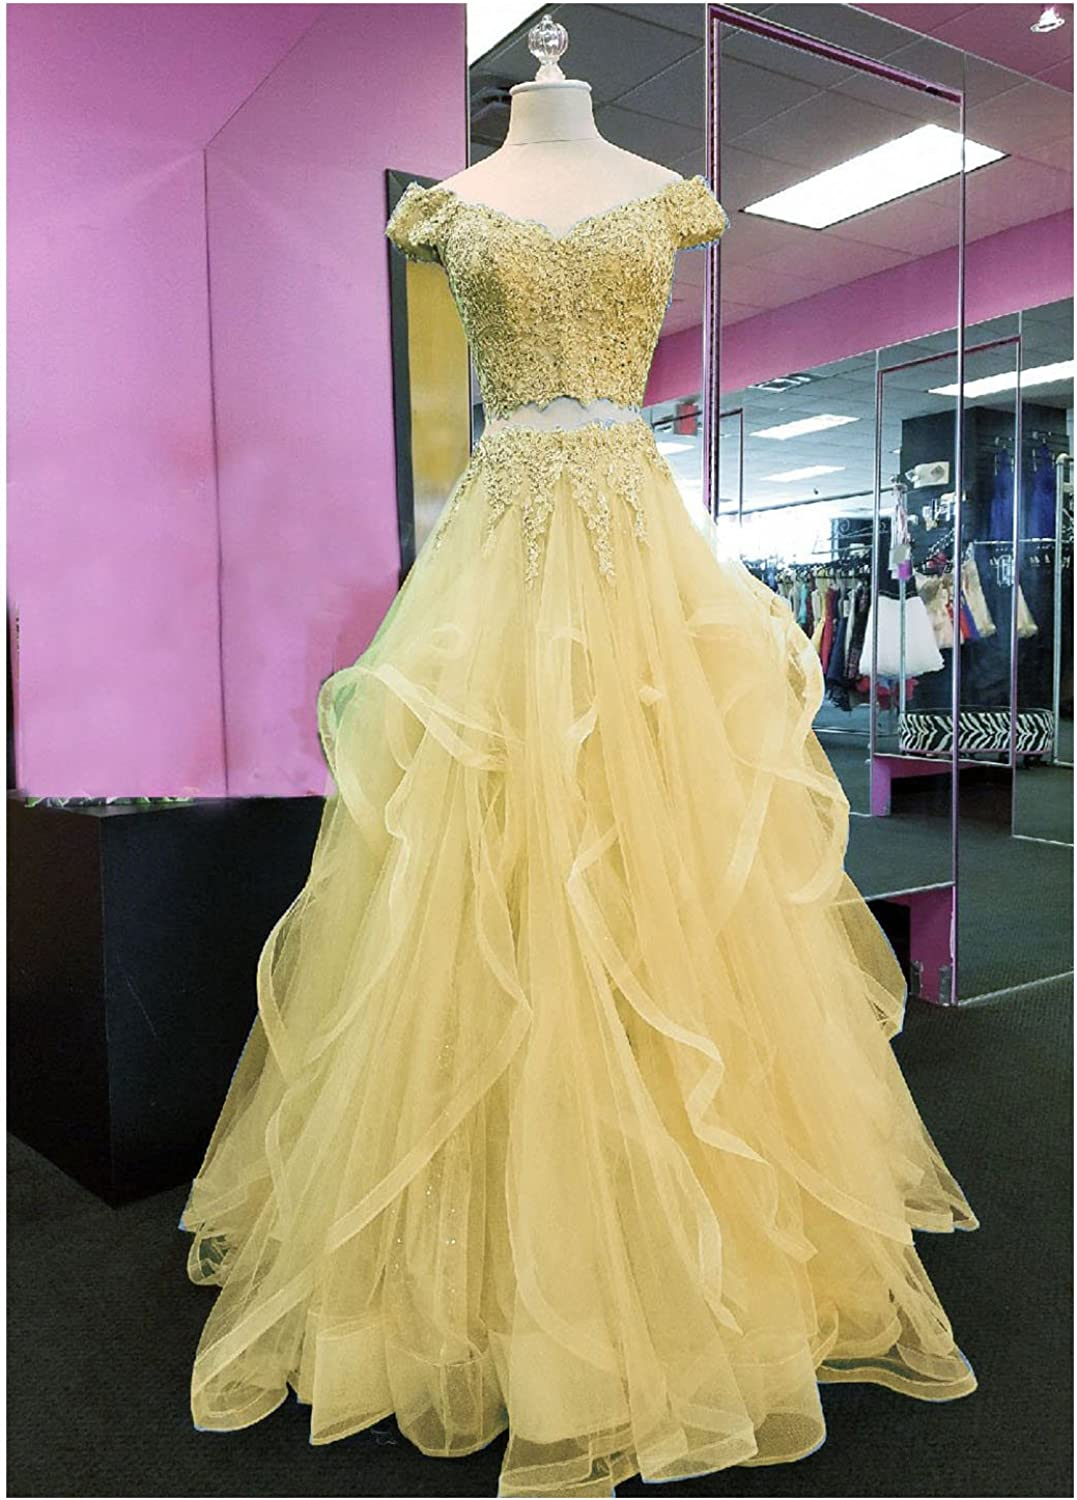 YIRENWANSHA Two Piece Off Shoulder Homecoming Dresses 2018 Tulle Appliqued Womens Party Gown YW29